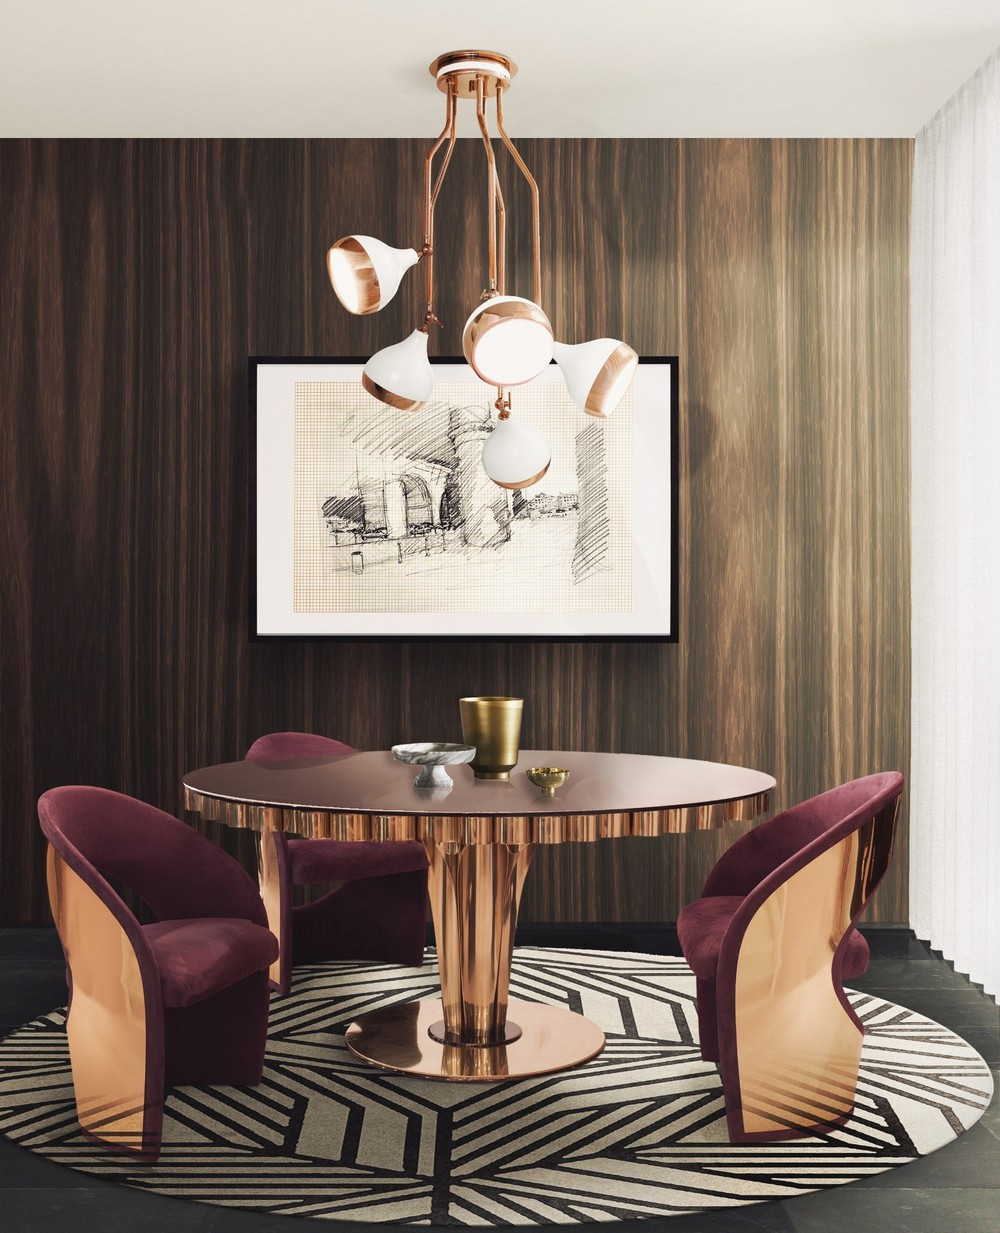 Art Deco Retro Vibe: The Dining Tables dining tables Art Deco Retro Vibe: The Dining Tables wormley